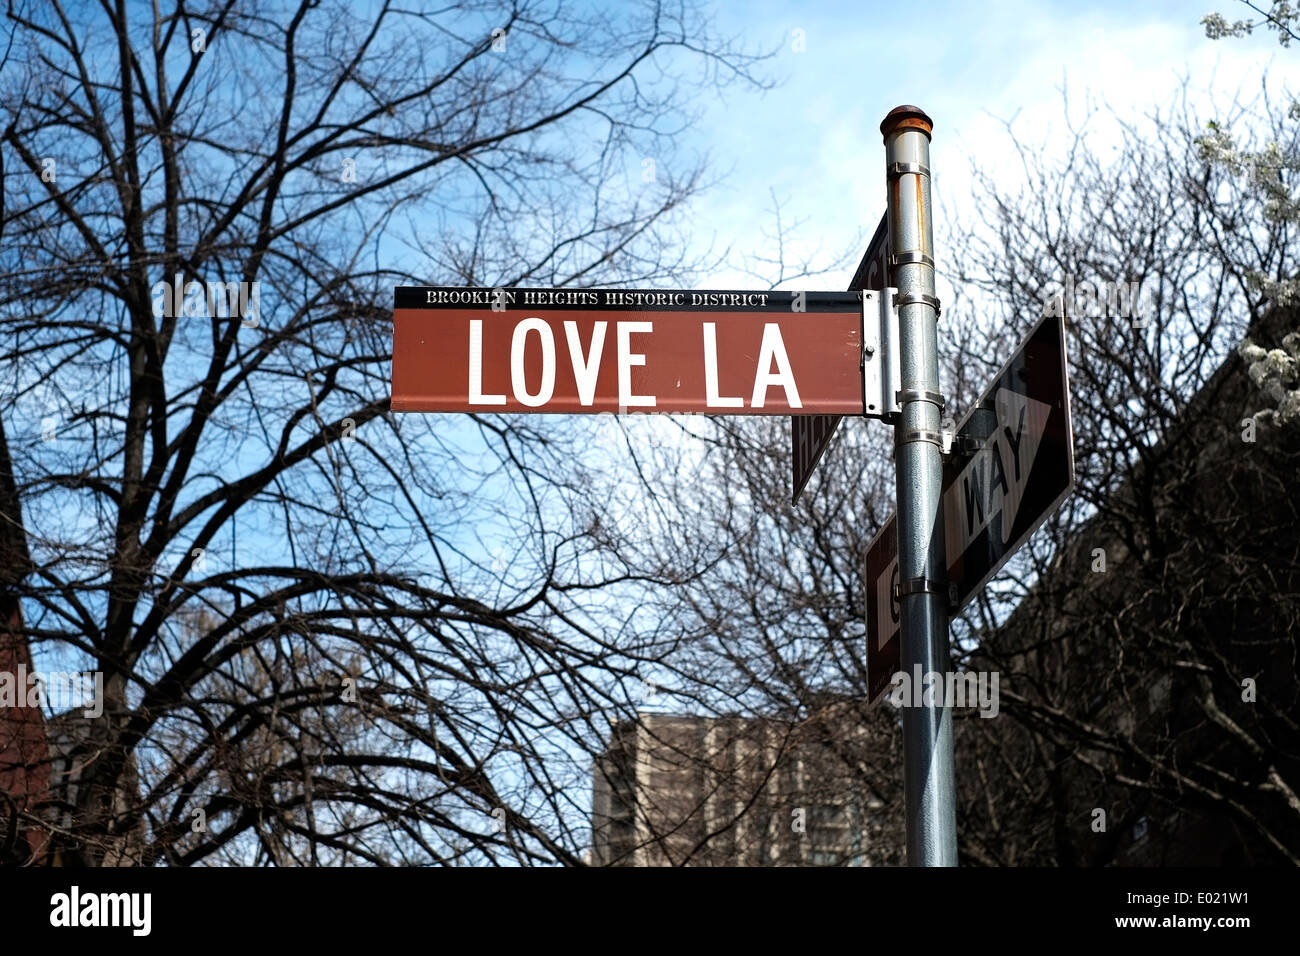 View of a street sign for Love Lane in Brooklyn, New York City. - Stock Image